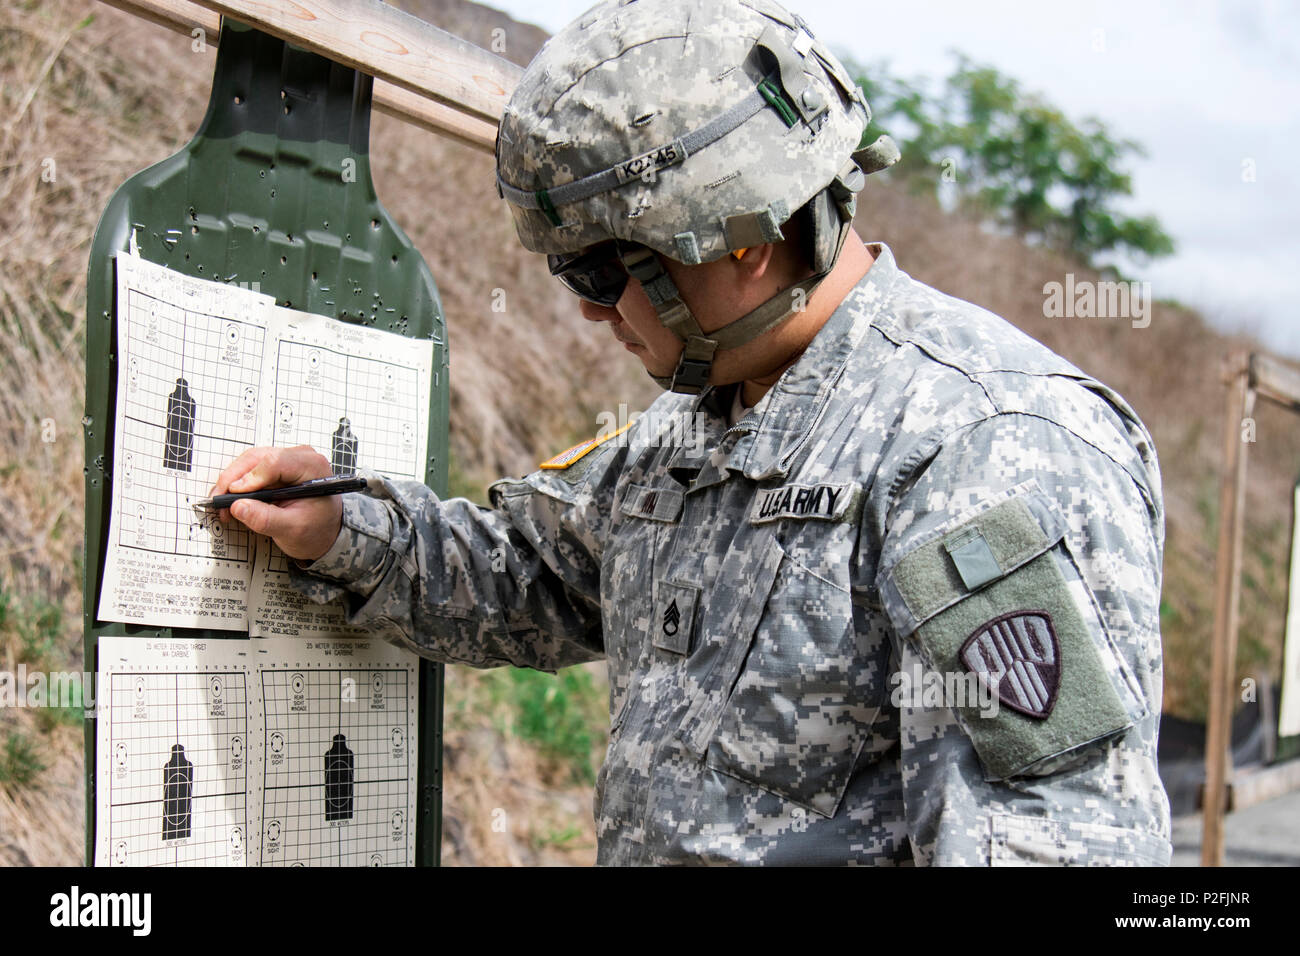 U.S. Army Staff Sgt. James Kim, a quartermaster and chemical equipment repairer assigned to the New York Army National Guard 145th Maintenance Battalion, reviews his zeroing score for the M4A1 Carbine on his target at Camp Smith Training Site, 20 September 2016. The Soldiers were qualifying in order to go on State Active Duty to reinforce Joint Task Force Empire Shield, the New York National Guard security force in New York City, at the direction of Governor Andrew M. Cuomo, in response to increased security concerns in the city following a Sept. 17 bomb attack there. (U.S. Army National Guard Stock Photo